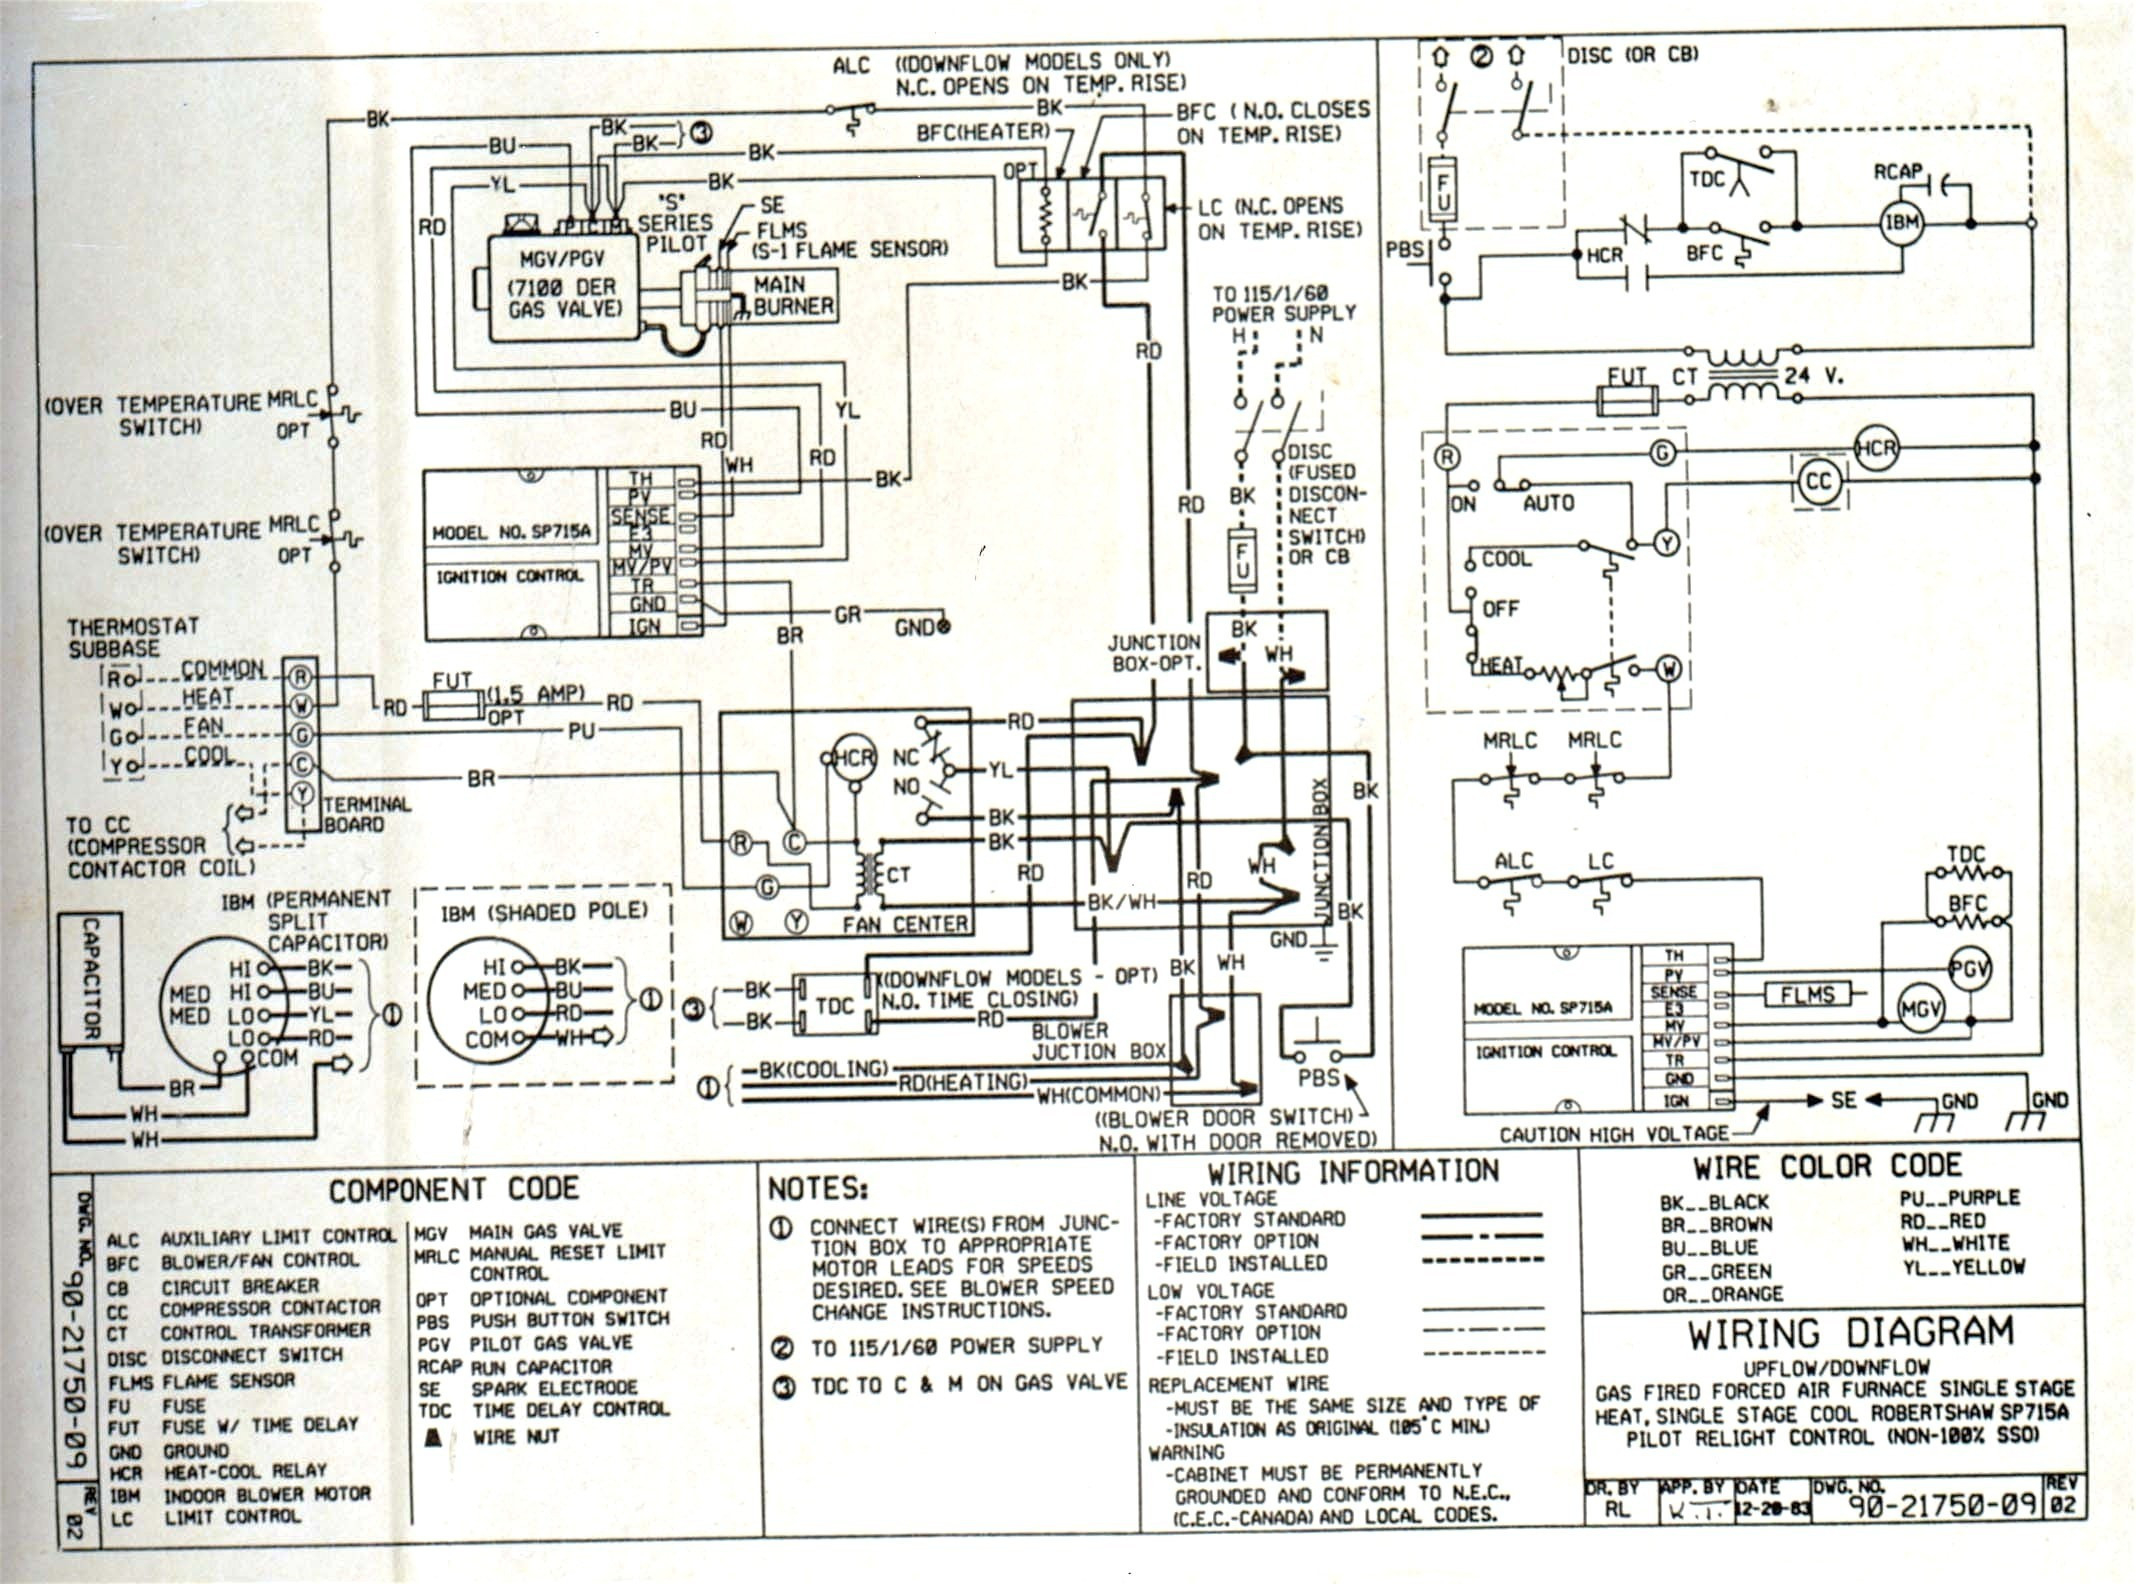 ac compressor wiring diagram Collection-Wiring Diagram Air Conditioning pressor Fresh Wiring Diagram Ac Pressor New Mcquay Air Conditioner Wiring 19-d